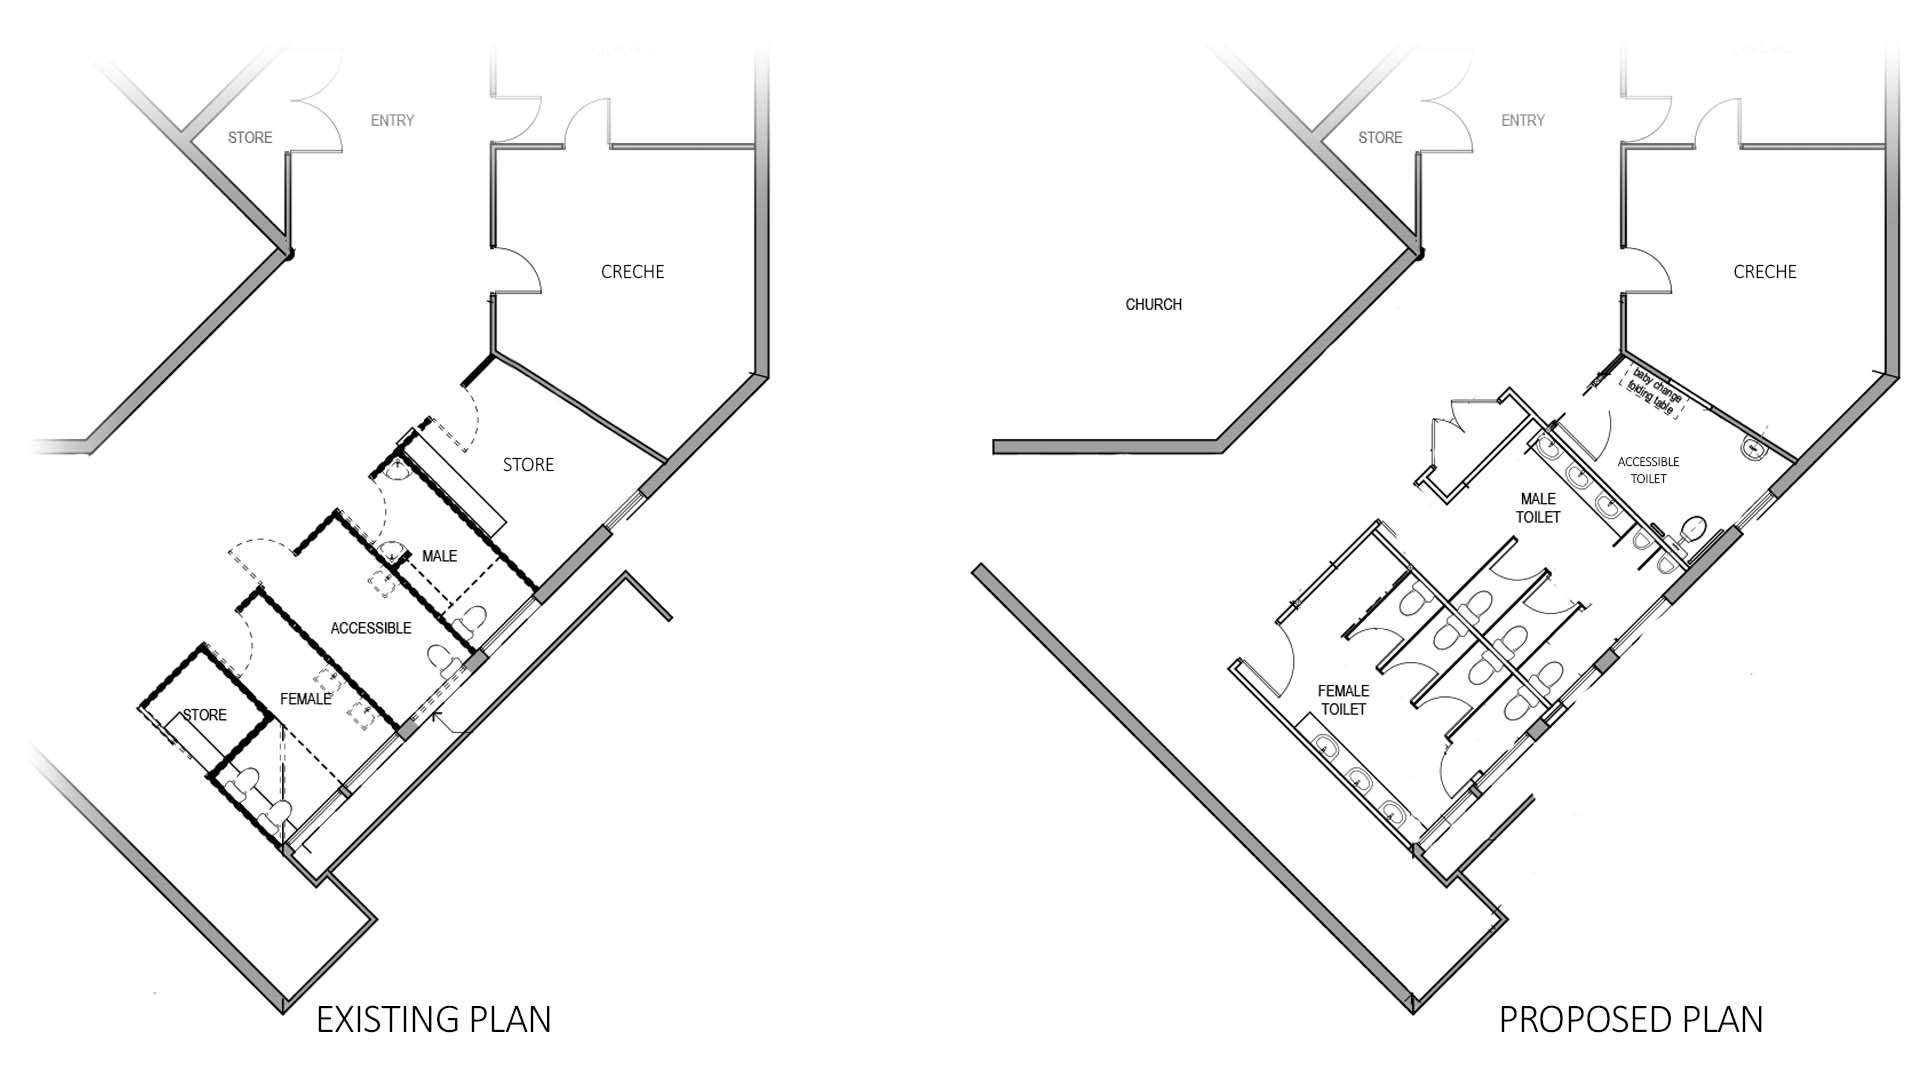 A site plan of existing and planned toilets